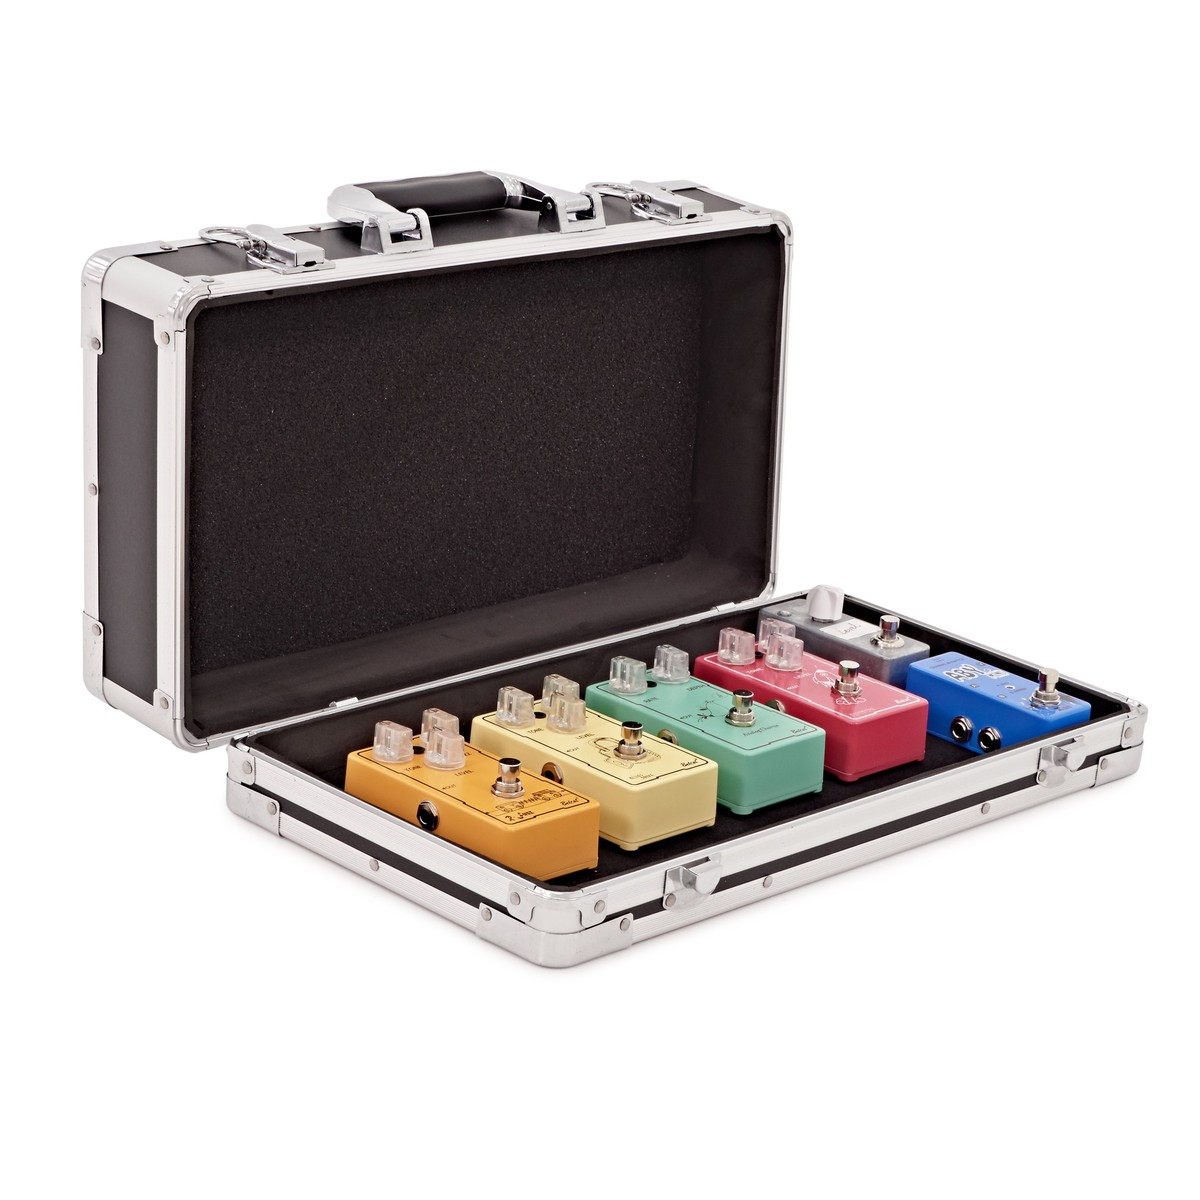 guitar pedal board flight case by gear4music at gear4music. Black Bedroom Furniture Sets. Home Design Ideas